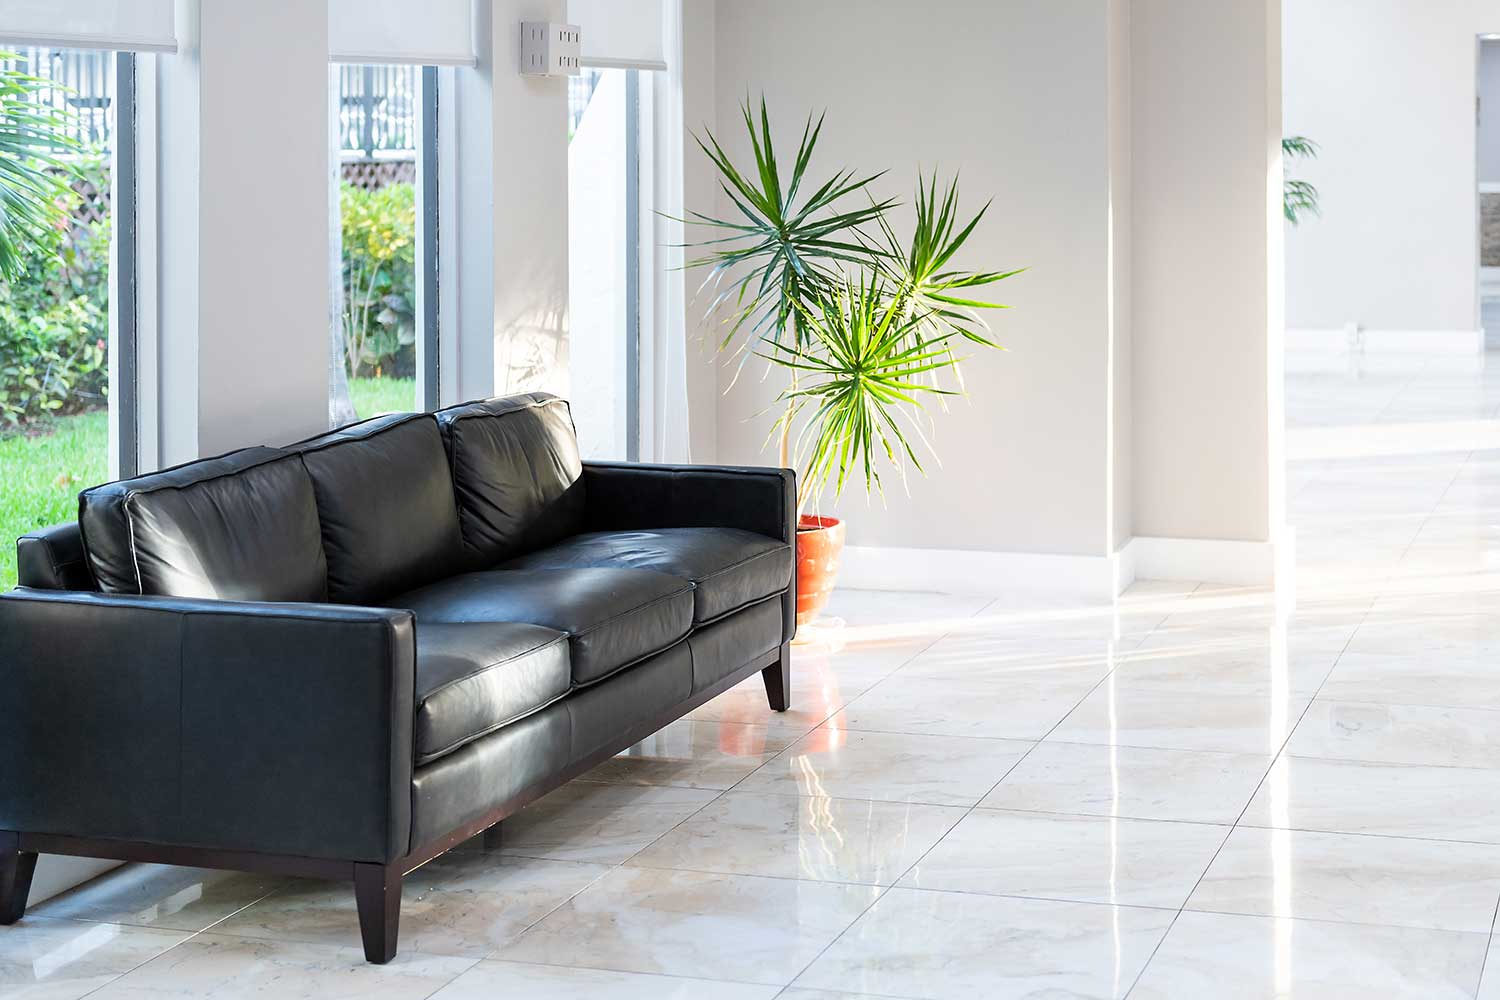 Hall room with tiled floor, black leather sofa and green potted palm tree